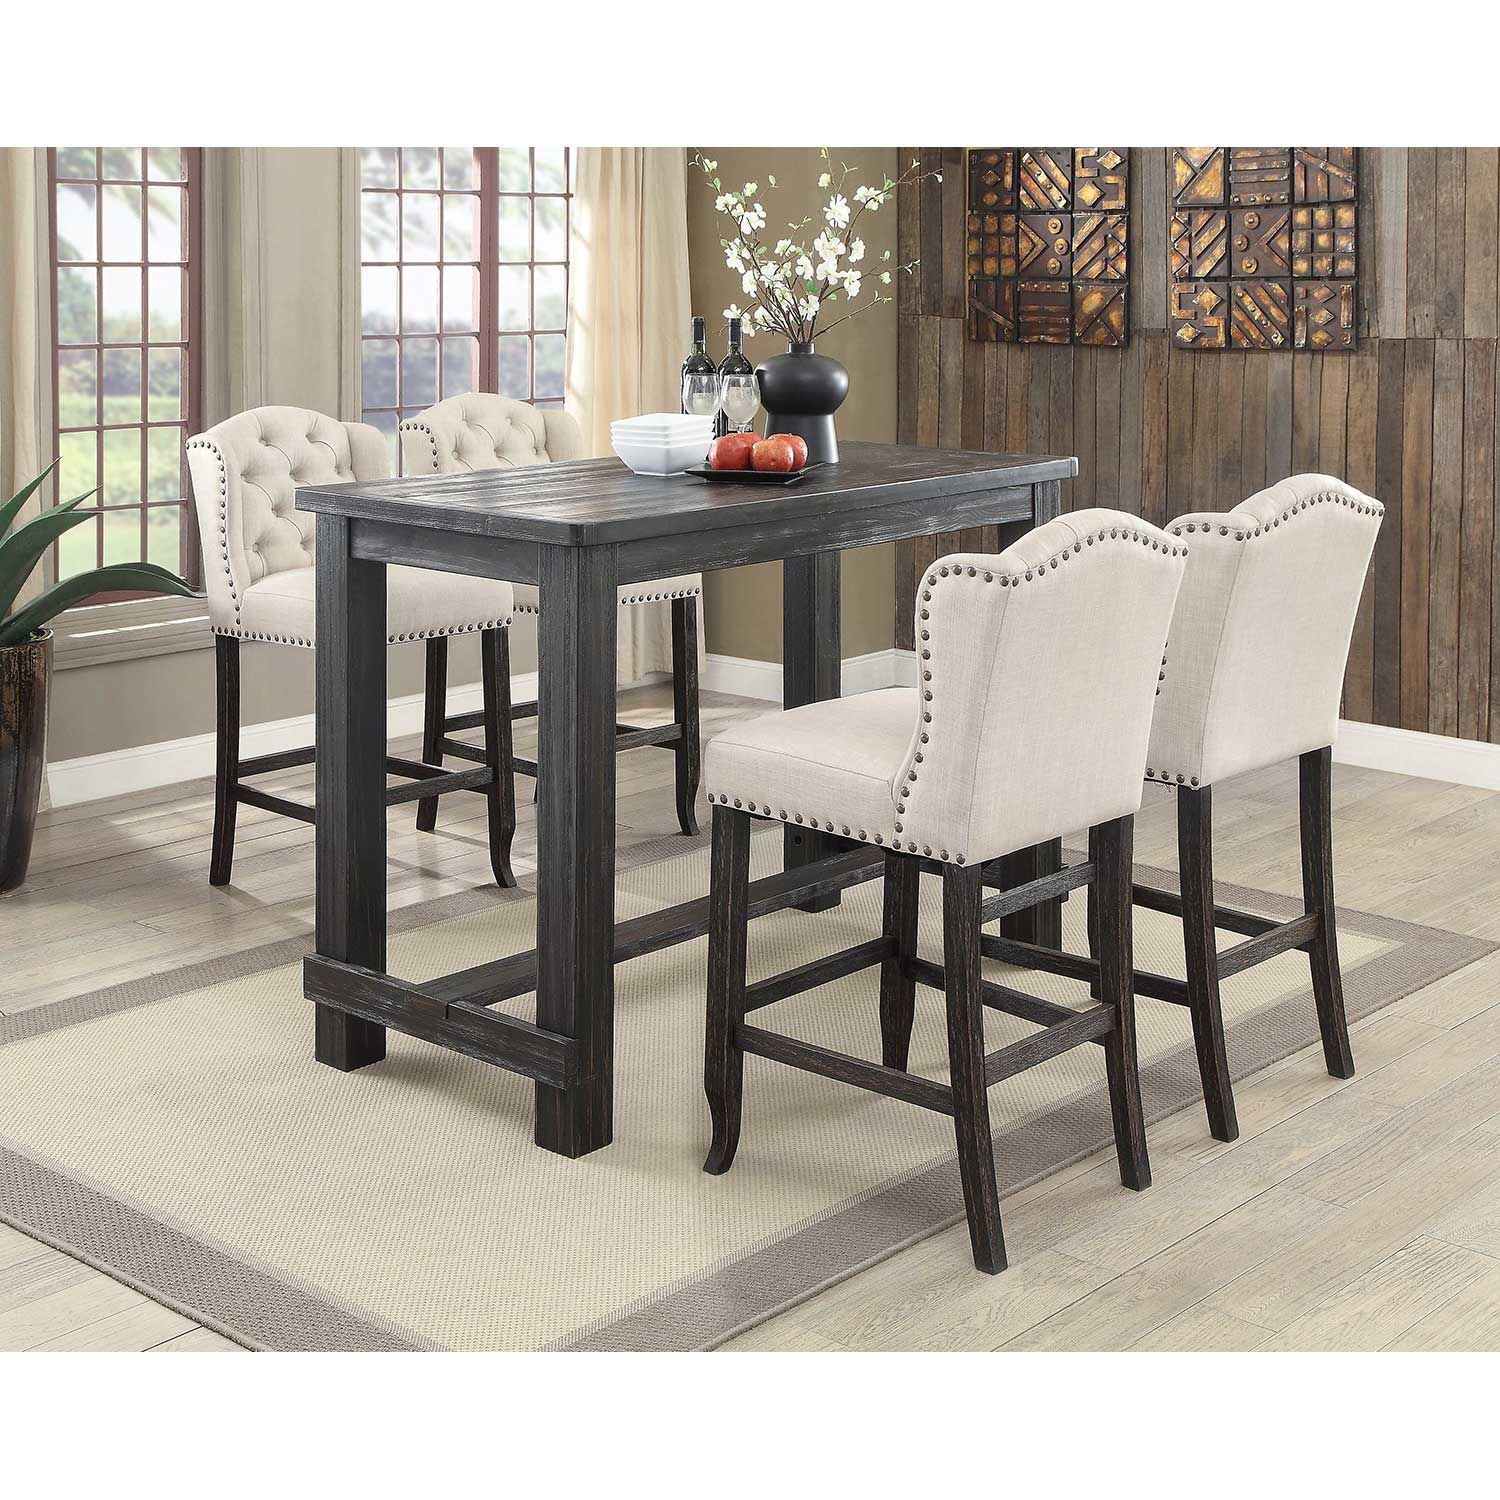 Picture of Ivie Upholstered Barstool